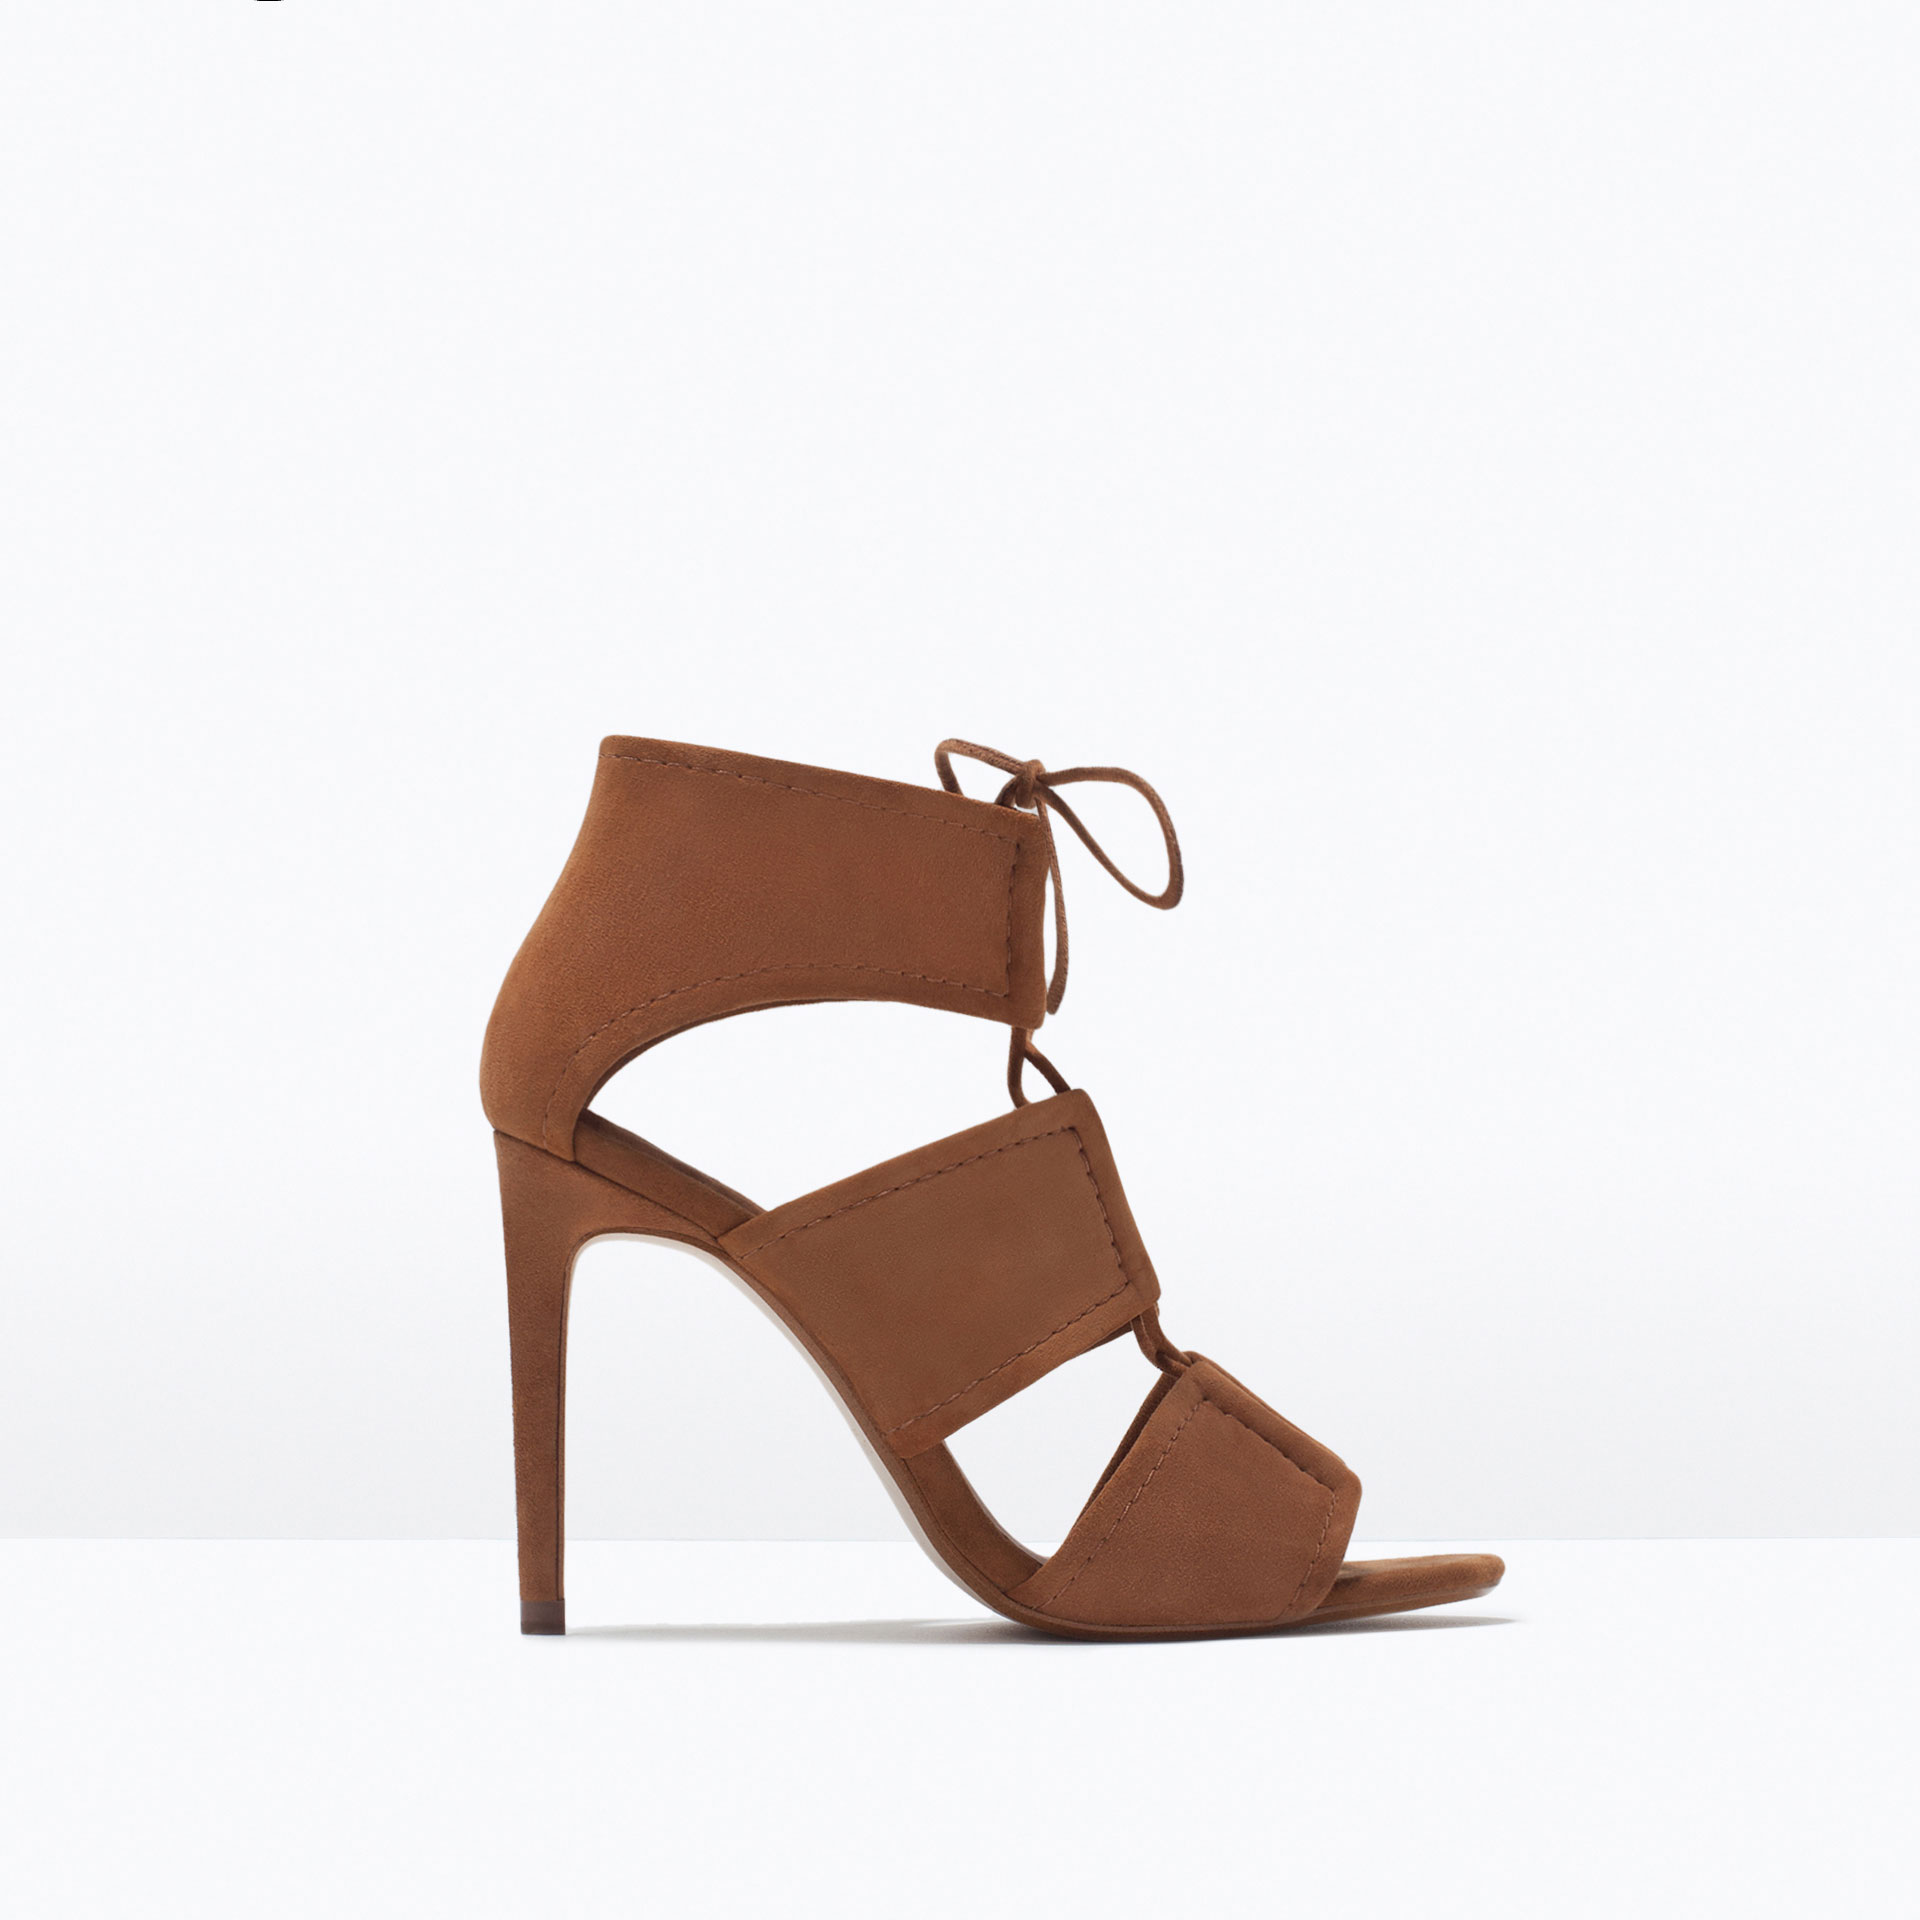 Zara Tan Sandals Fijn I